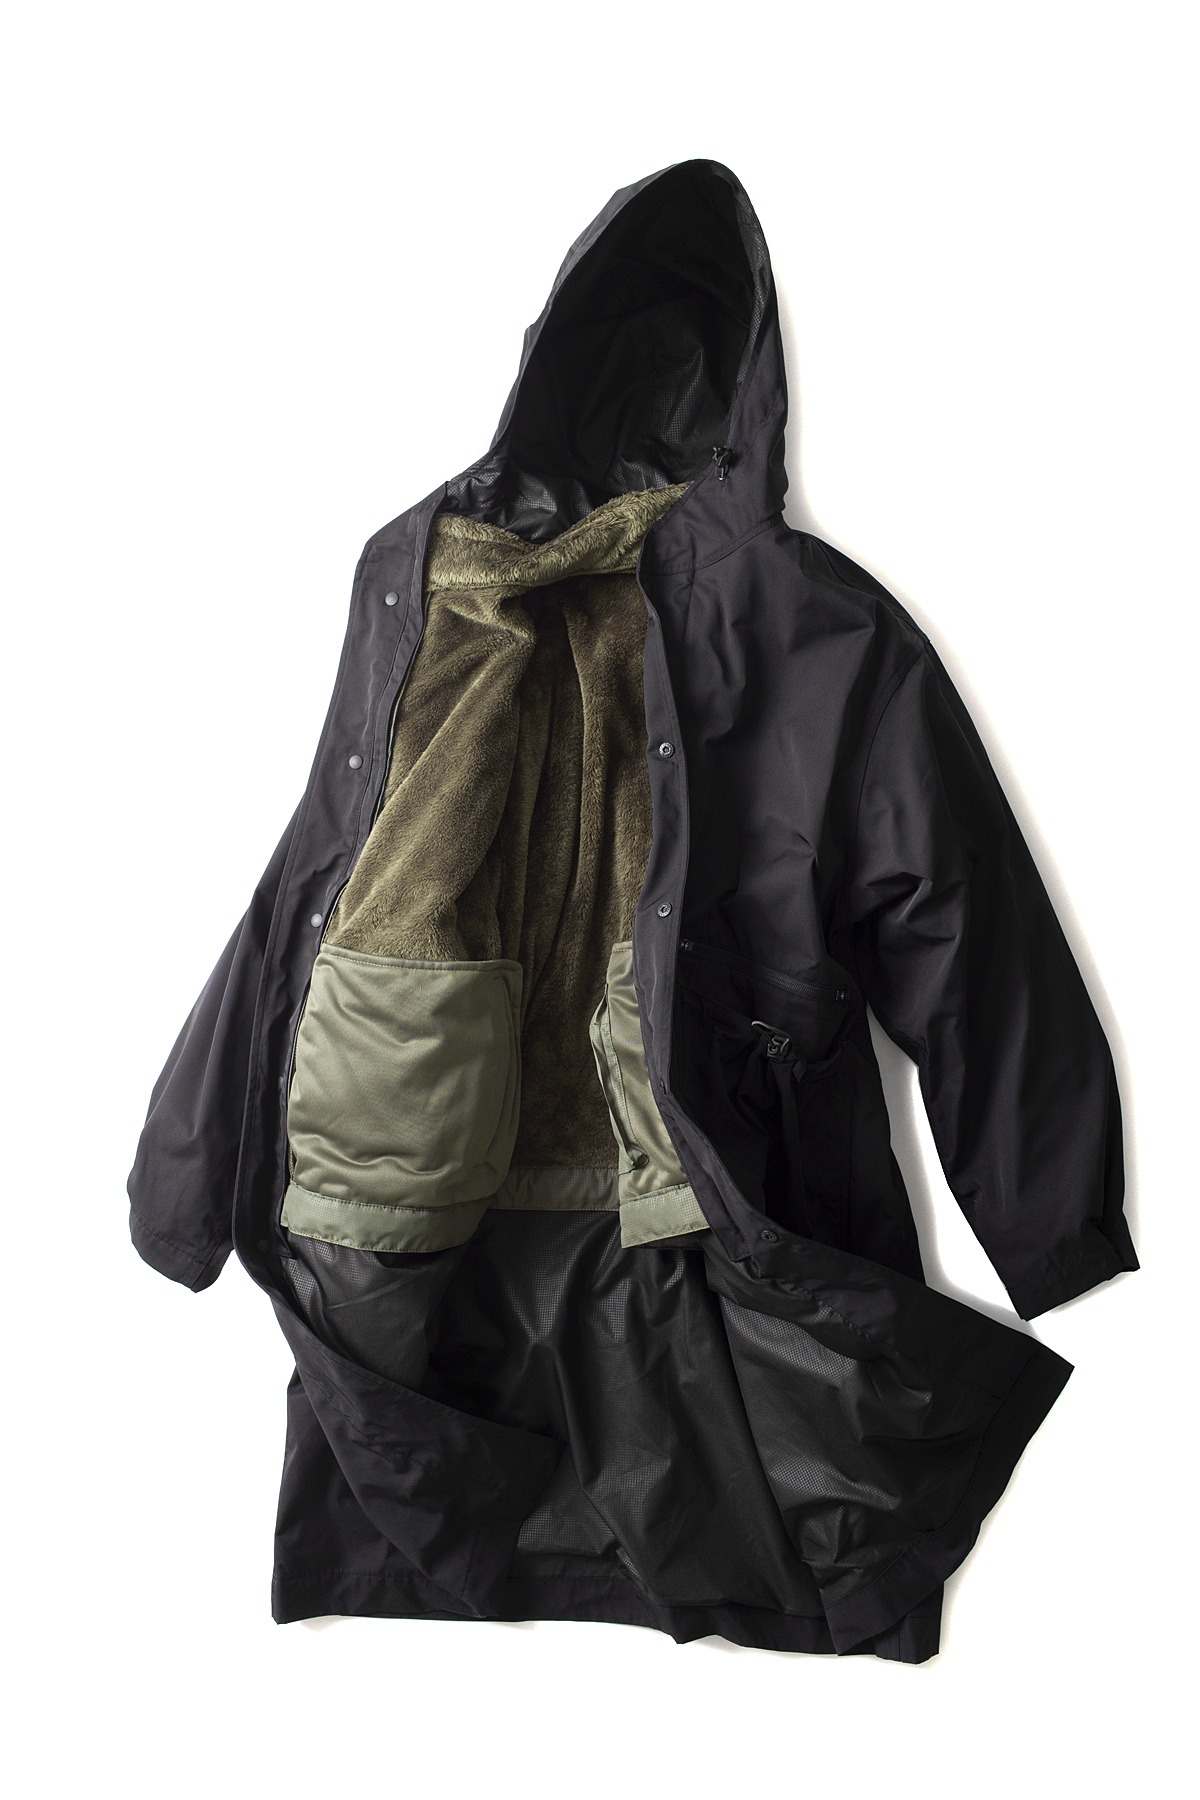 UNAFFECTED : Oversized Long Parka (Black)